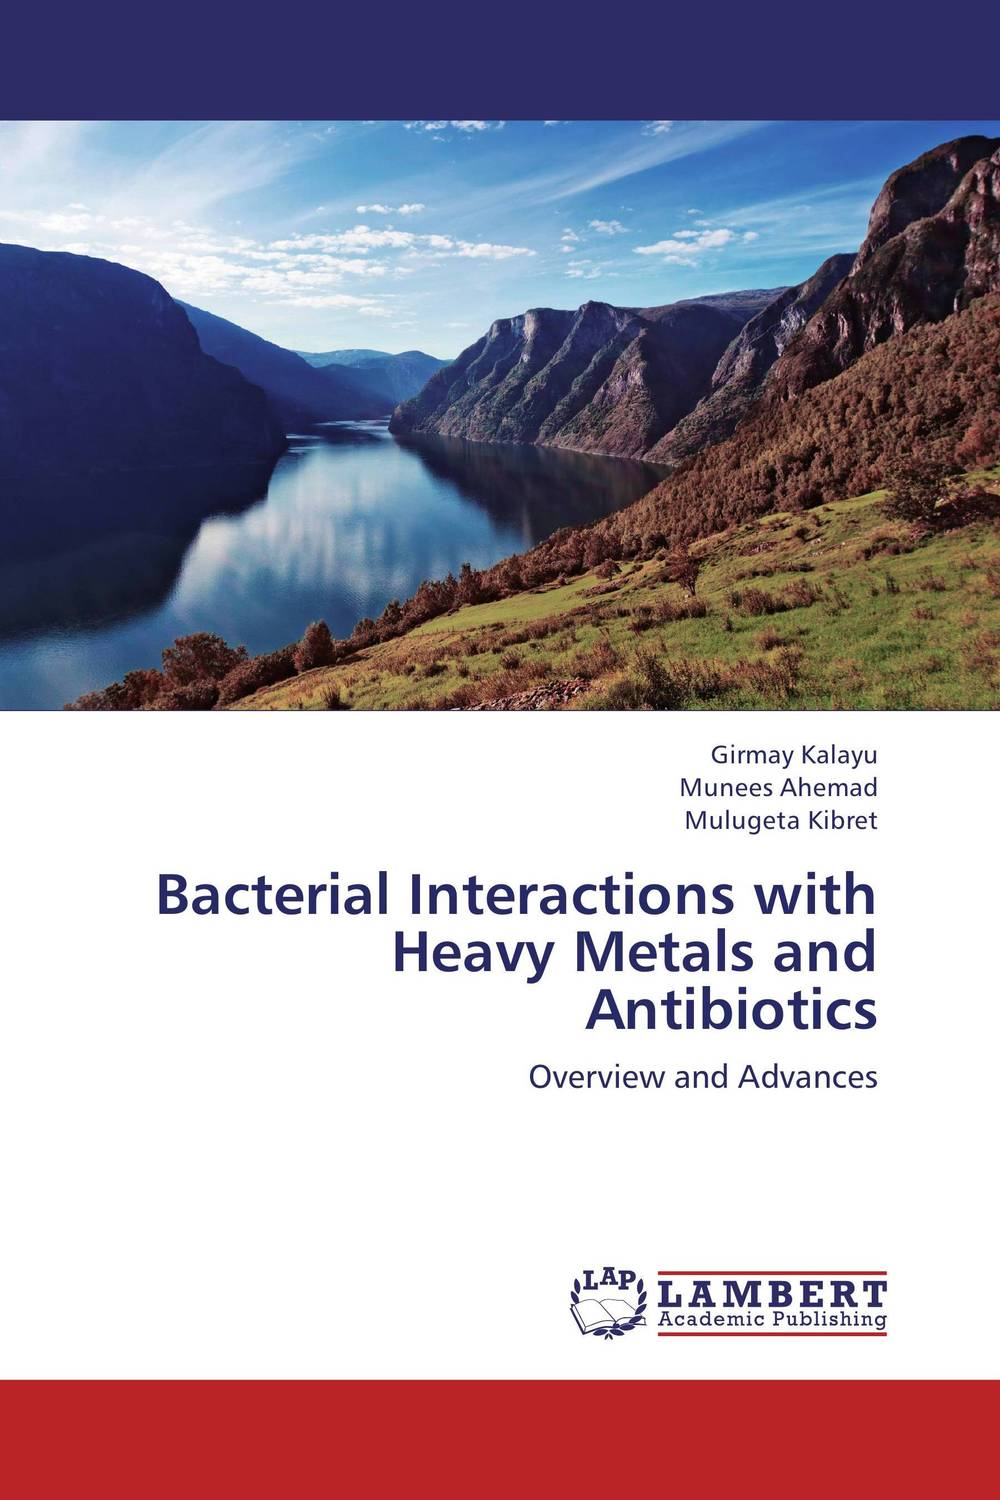 Bacterial Interactions with Heavy Metals and Antibiotics quisisana rimini 3 римини